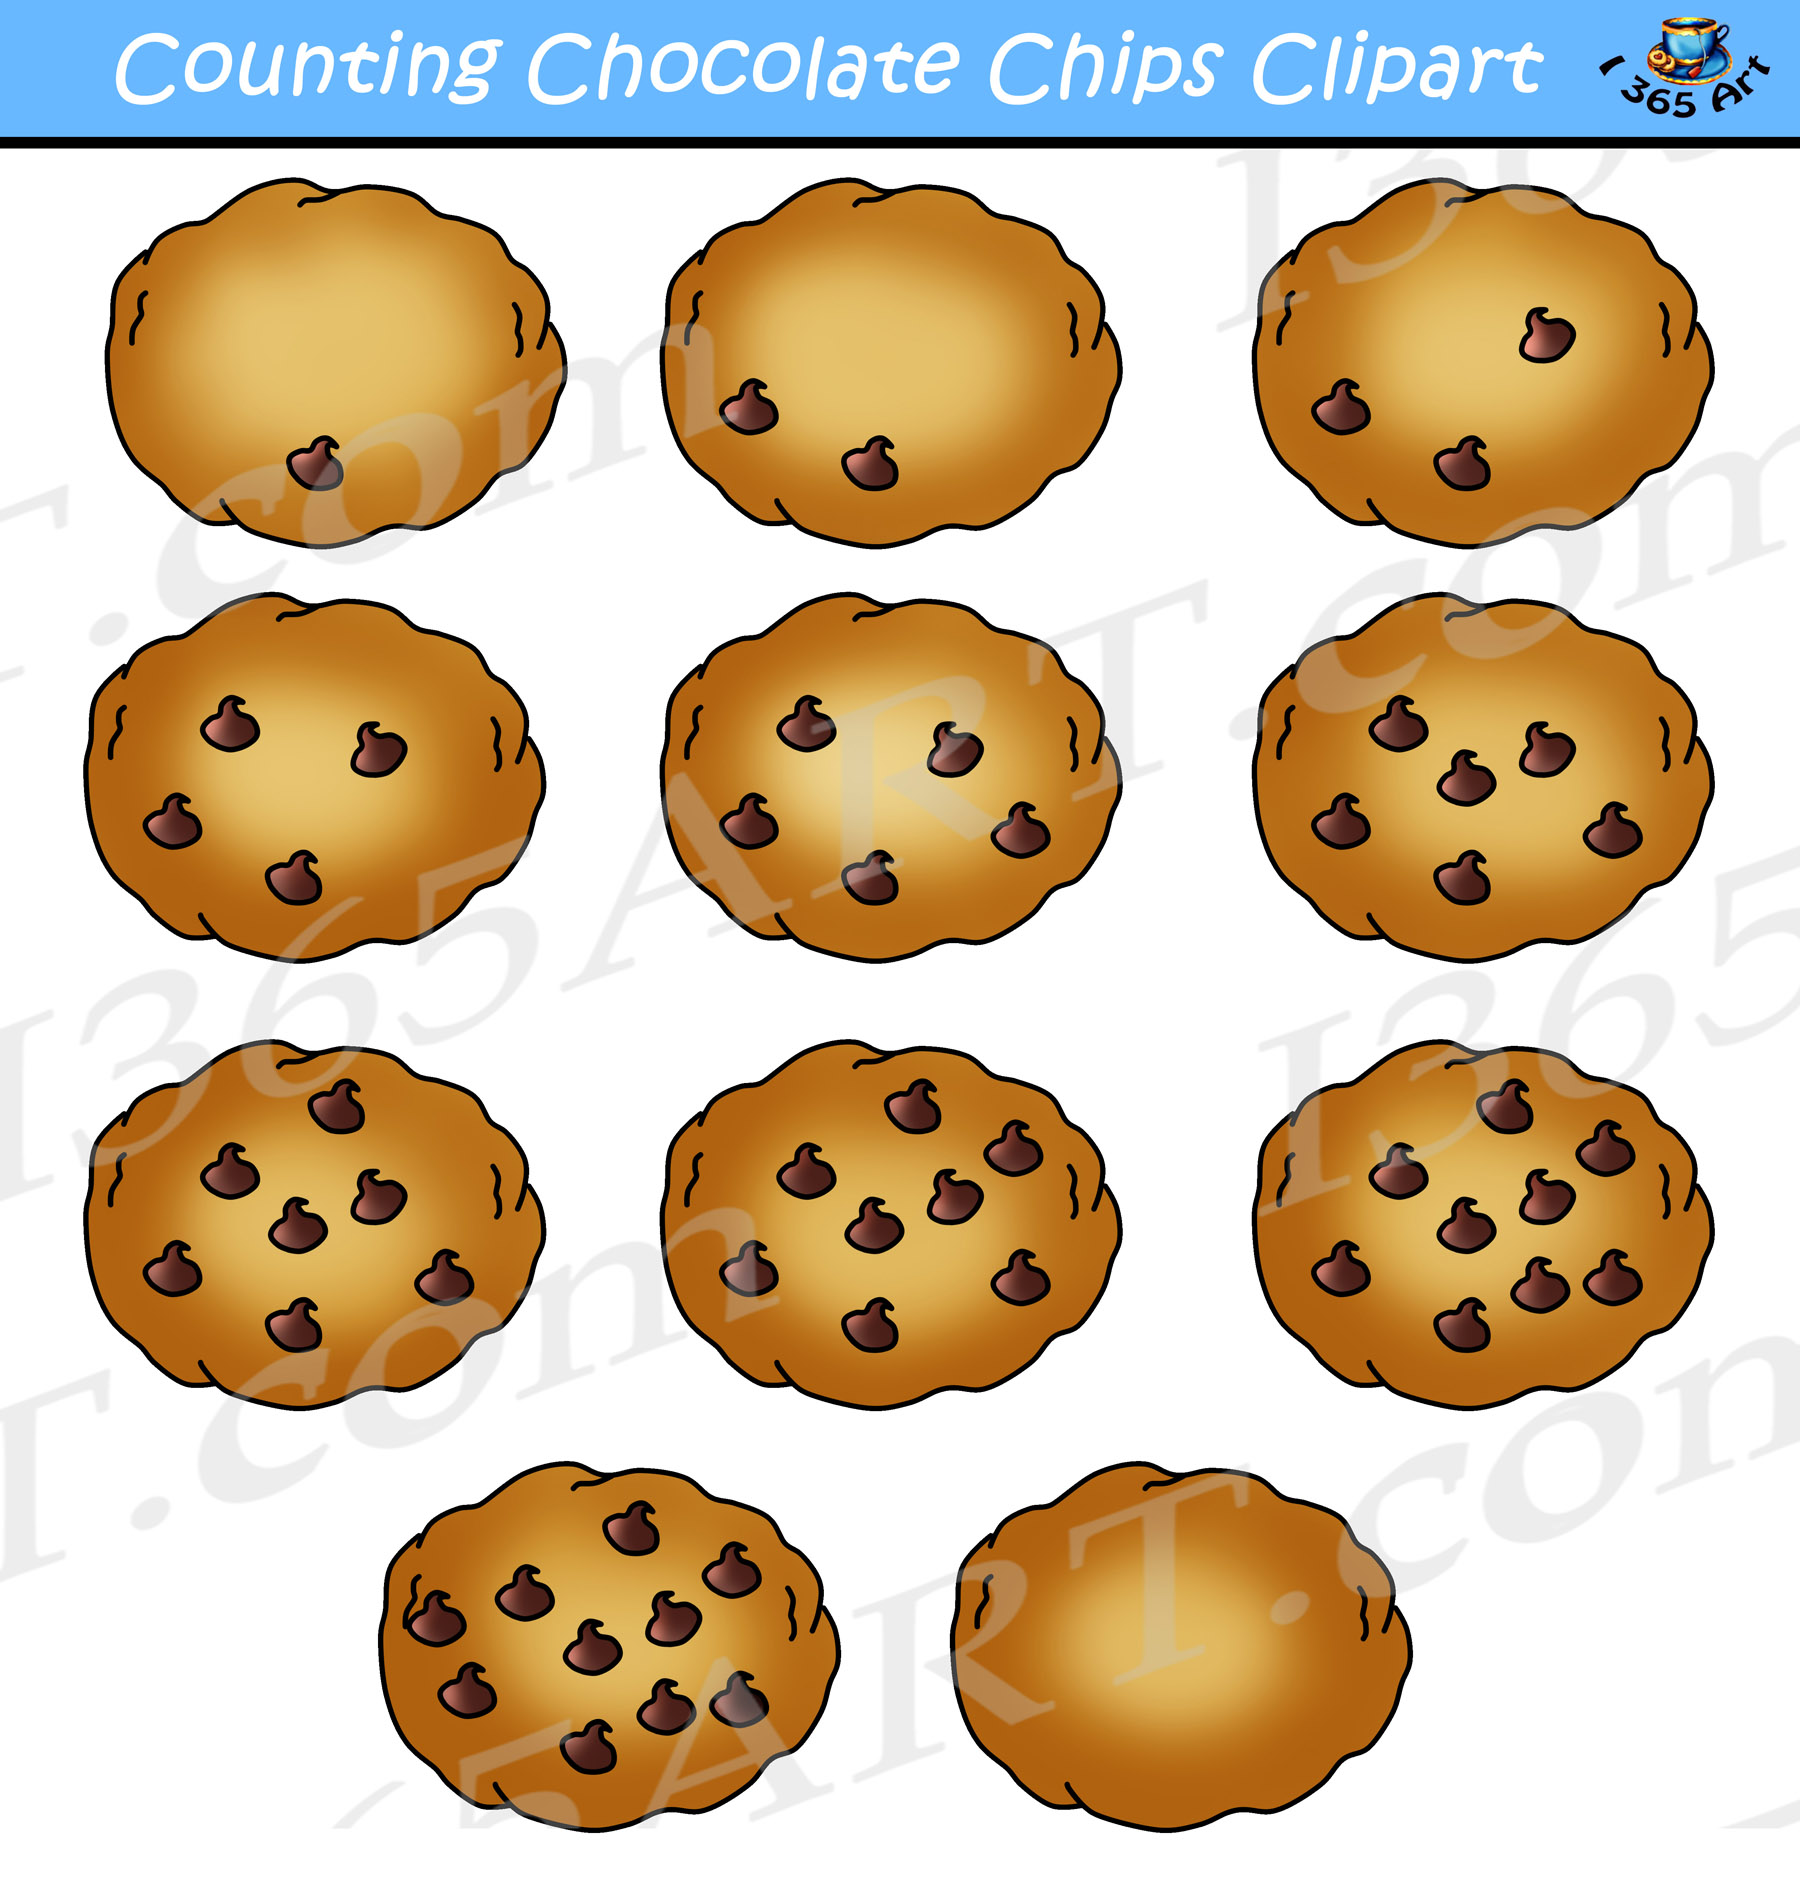 clip royalty free Chocolate chip cookies clipart. Counting commercial use